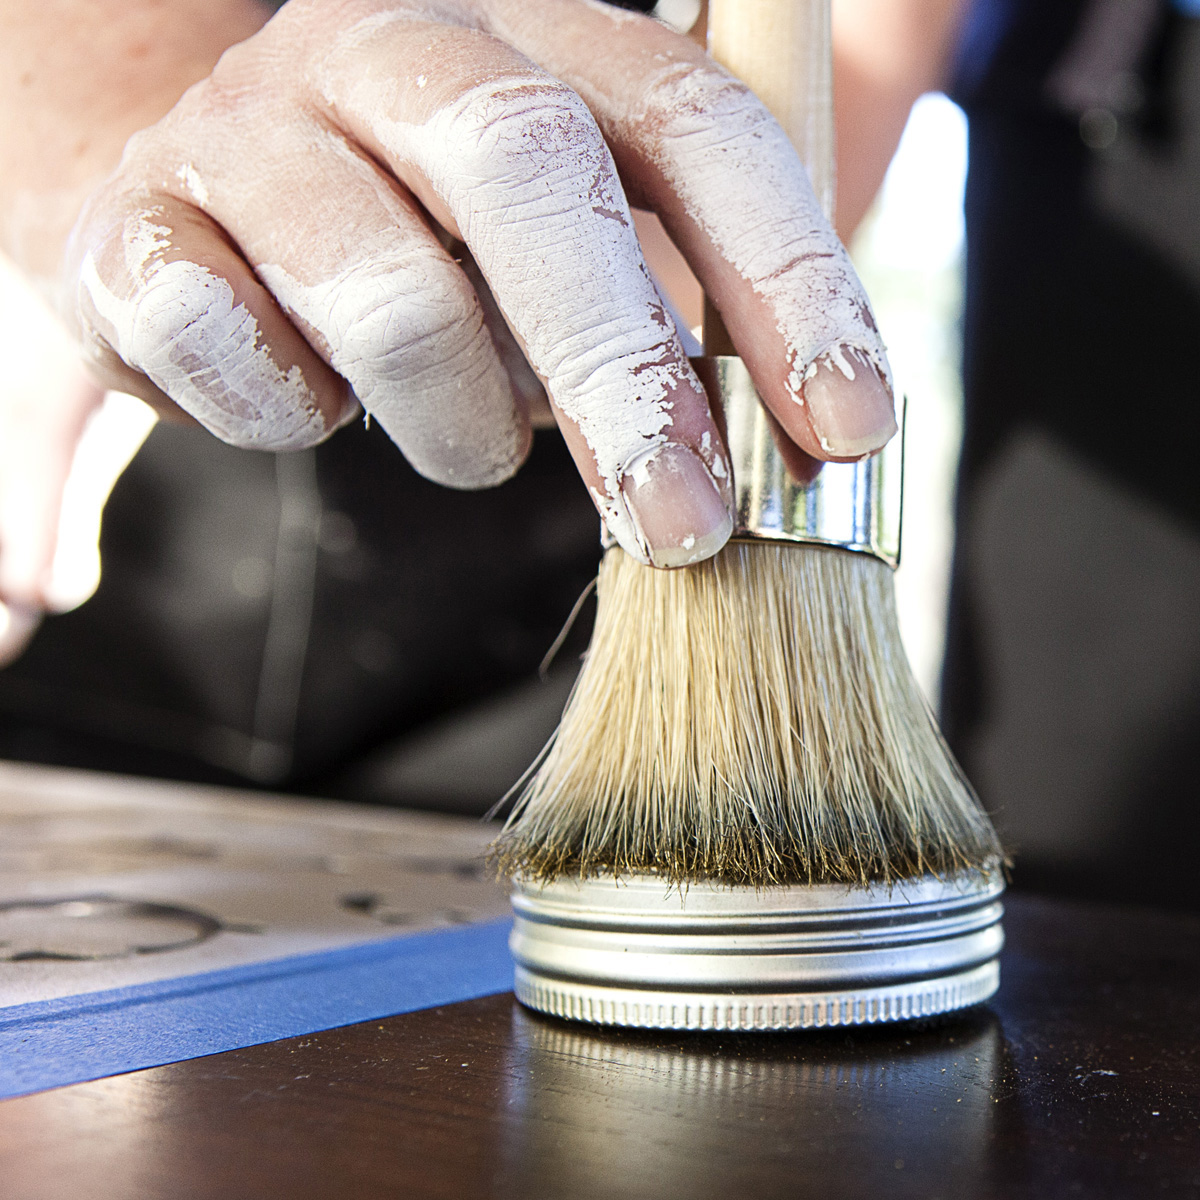 Grab a hold of a wax brush, and start dabbing in the tin. Tap off excess onto paper towel or cloth. Make sure you coat the brush as evenly as possible.